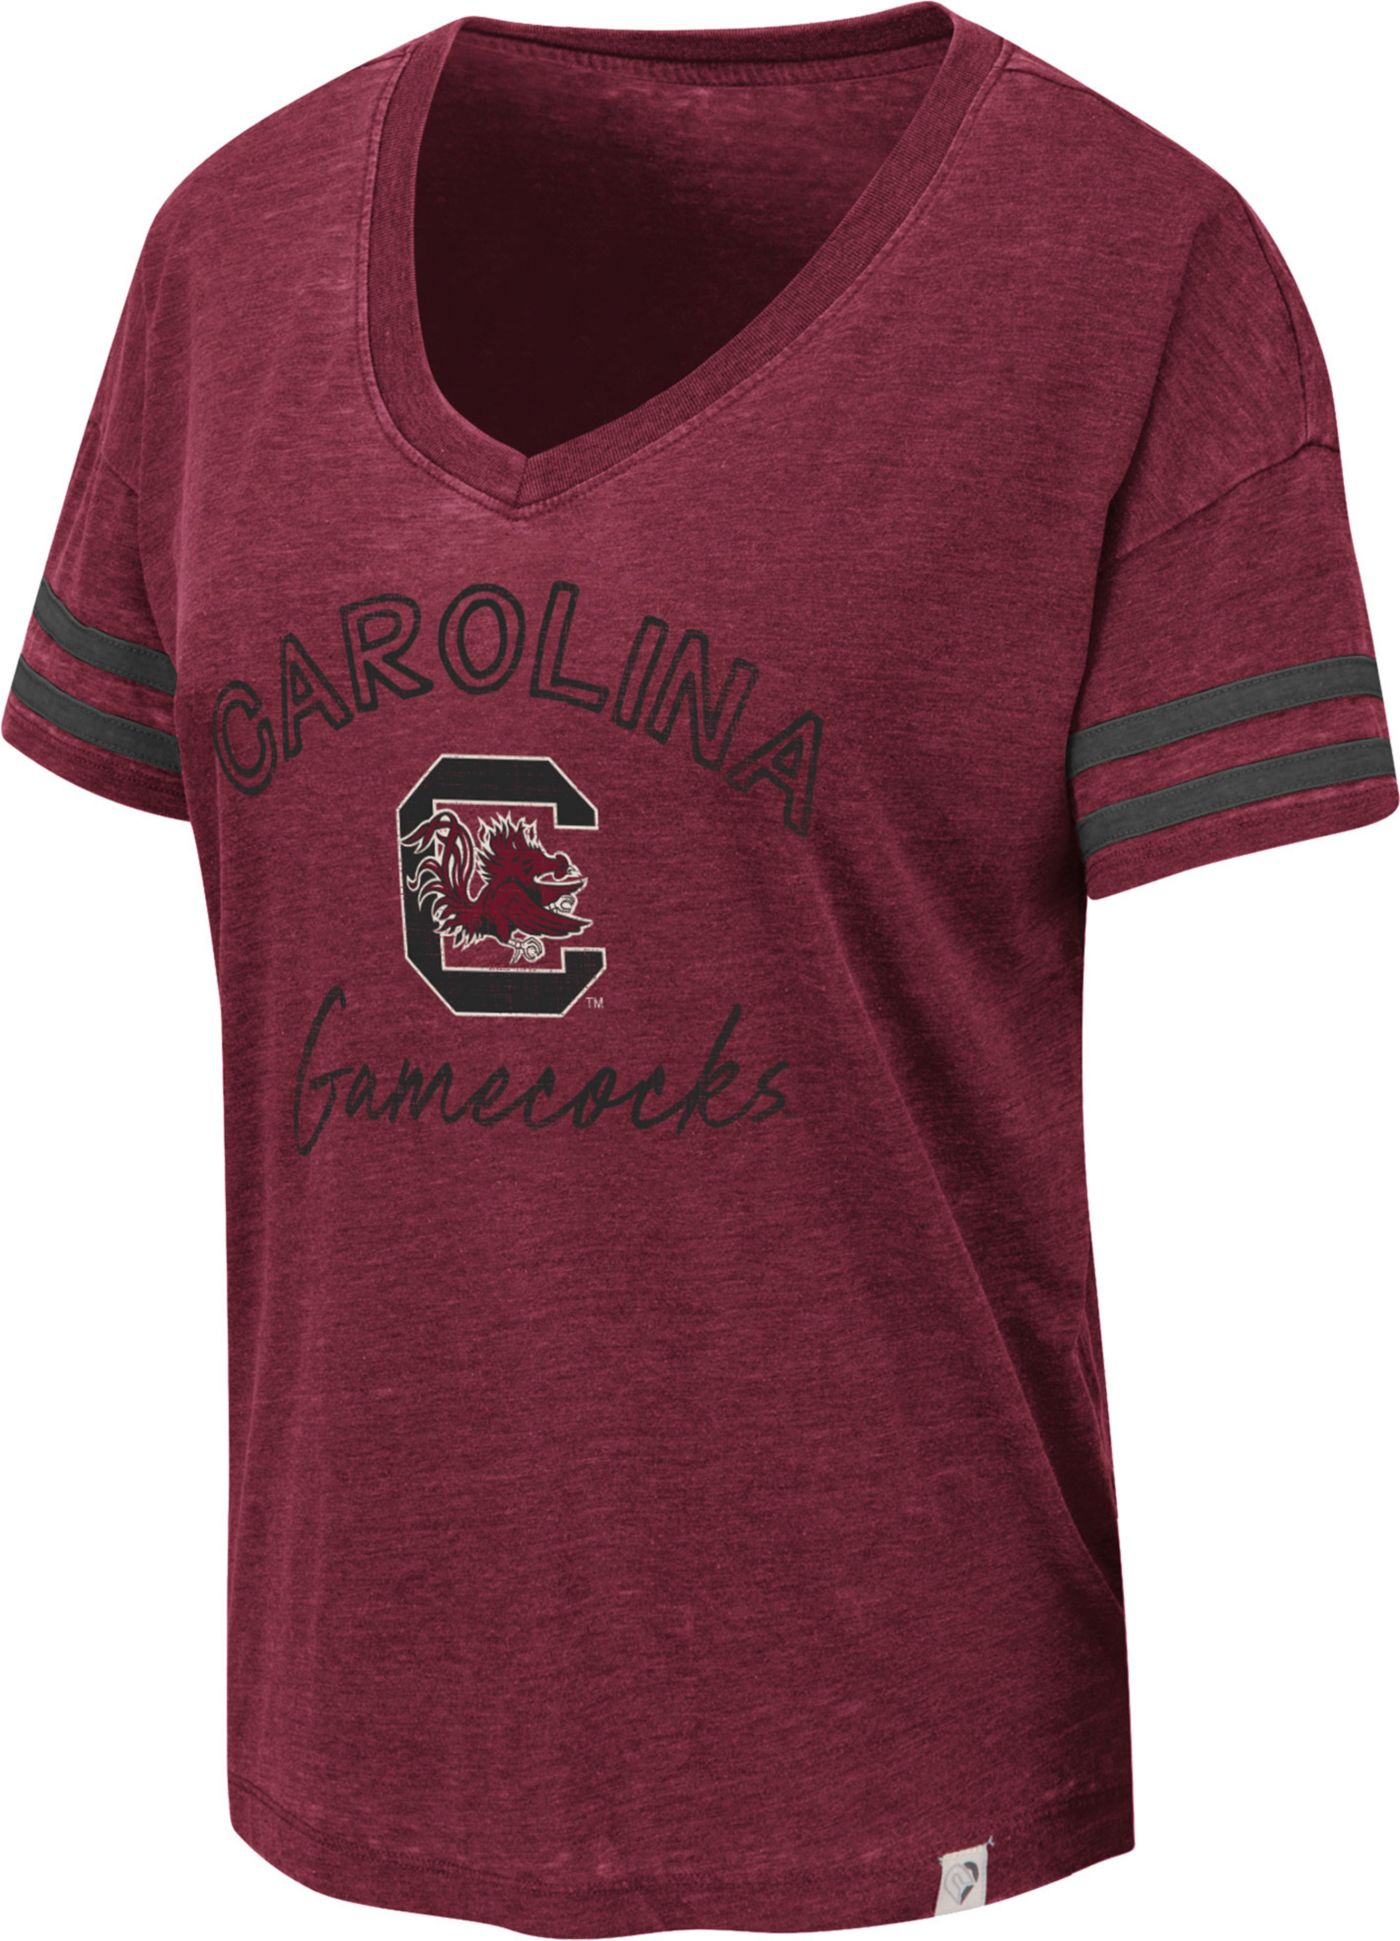 Colosseum Women's South Carolina Gamecocks Garnet Savona V-Neck T-Shirt